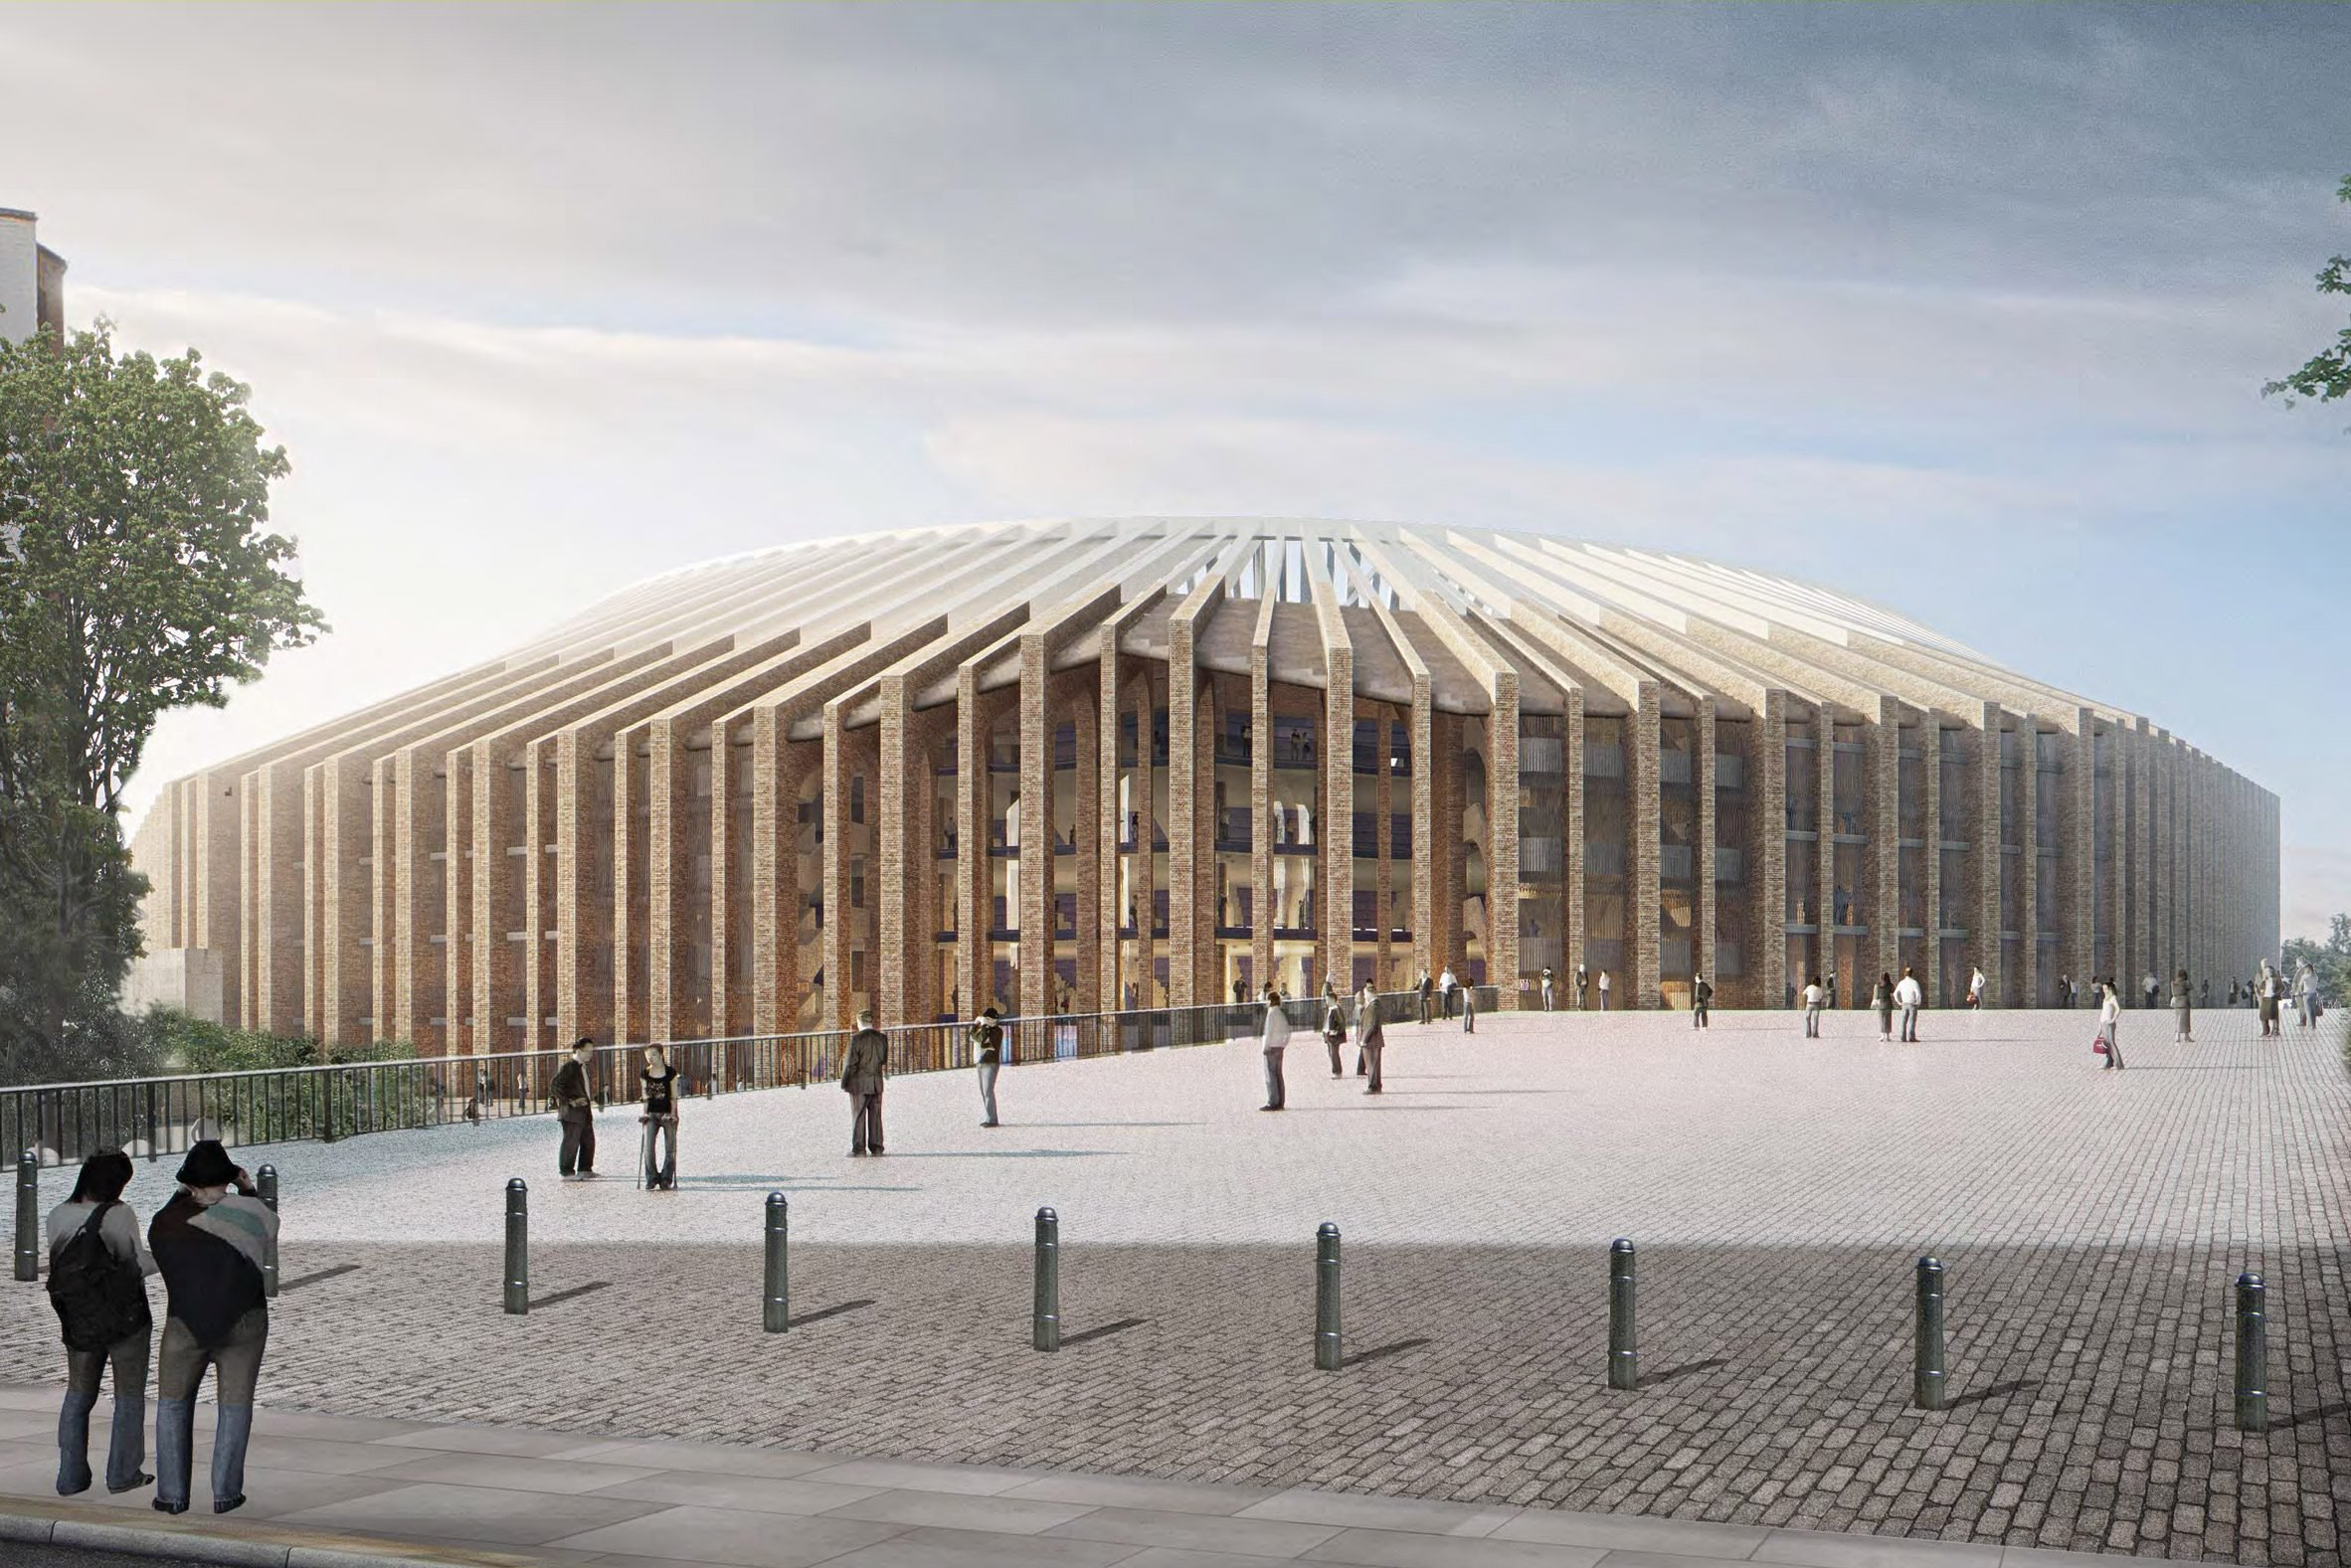 Chelsea's hopes to build Europe's most expensive stadium hit stumbling block